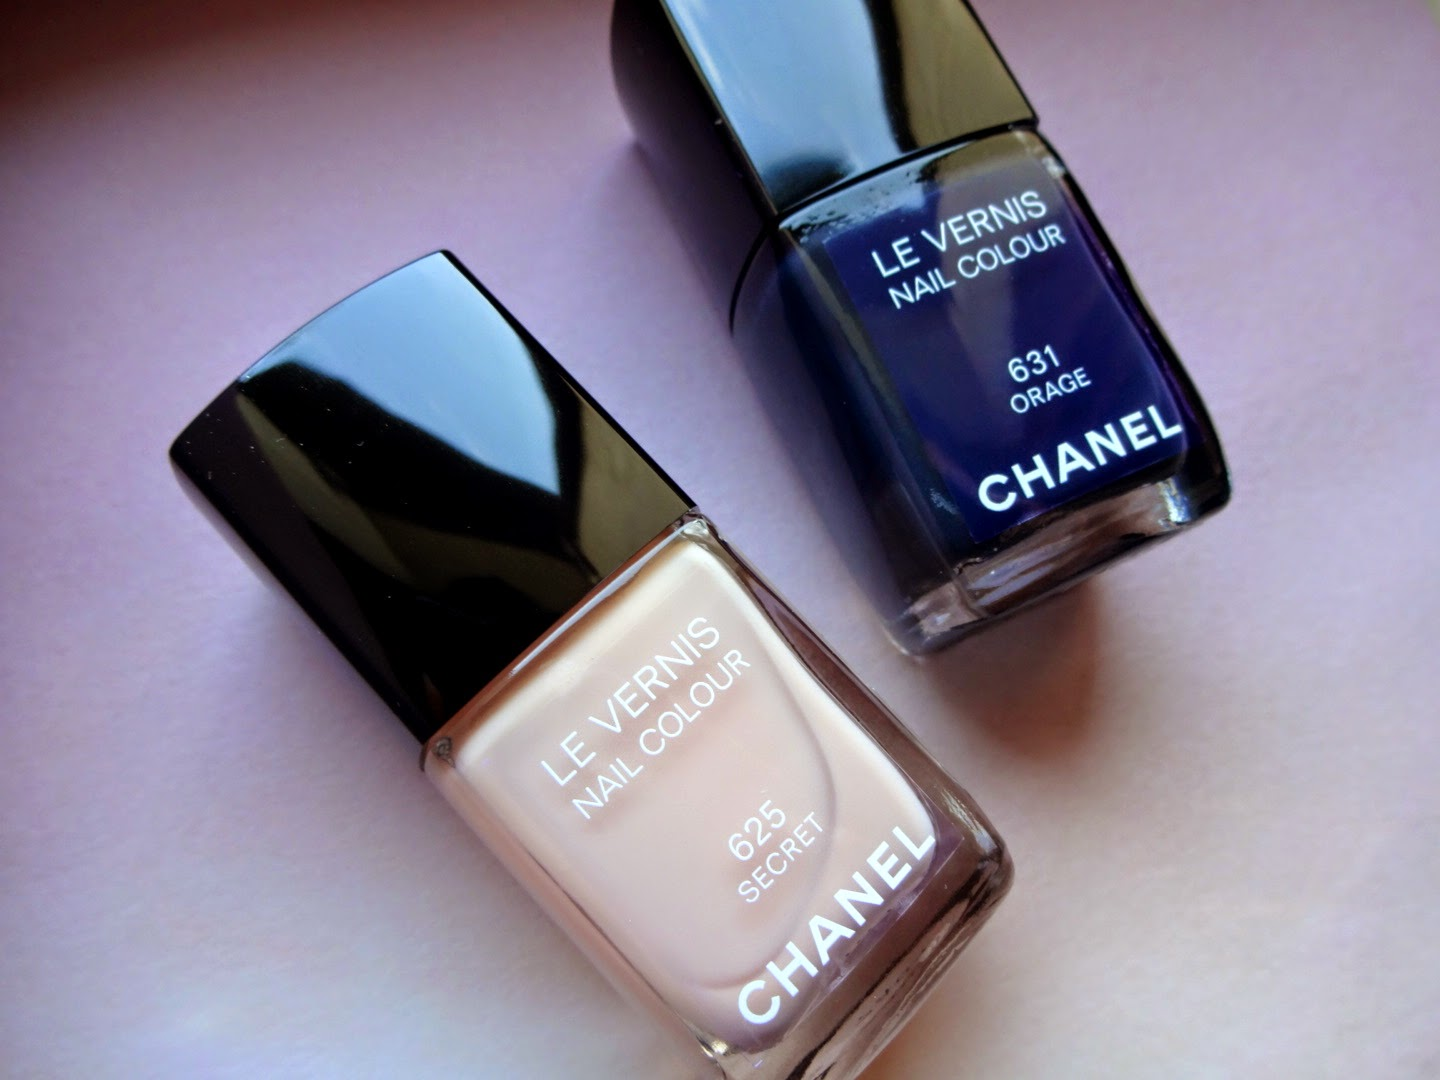 chanel Le Vernis Secret, chanel le vernis Orage, chanel make up autunno 2014, chanel etats poetiques collection